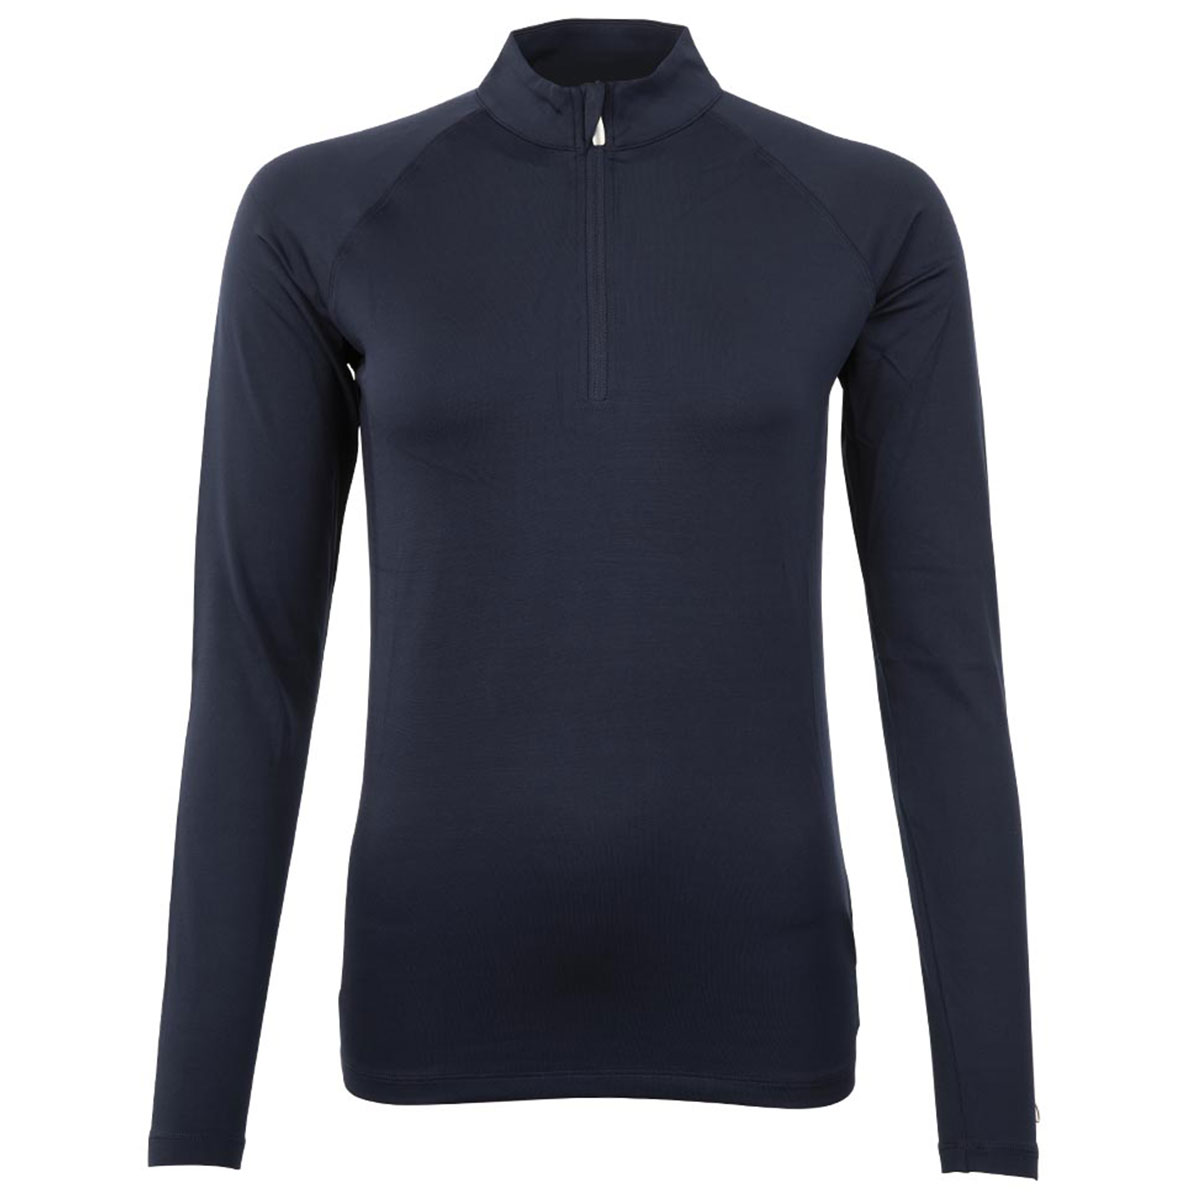 BR Event pully donkerblauw maat:m